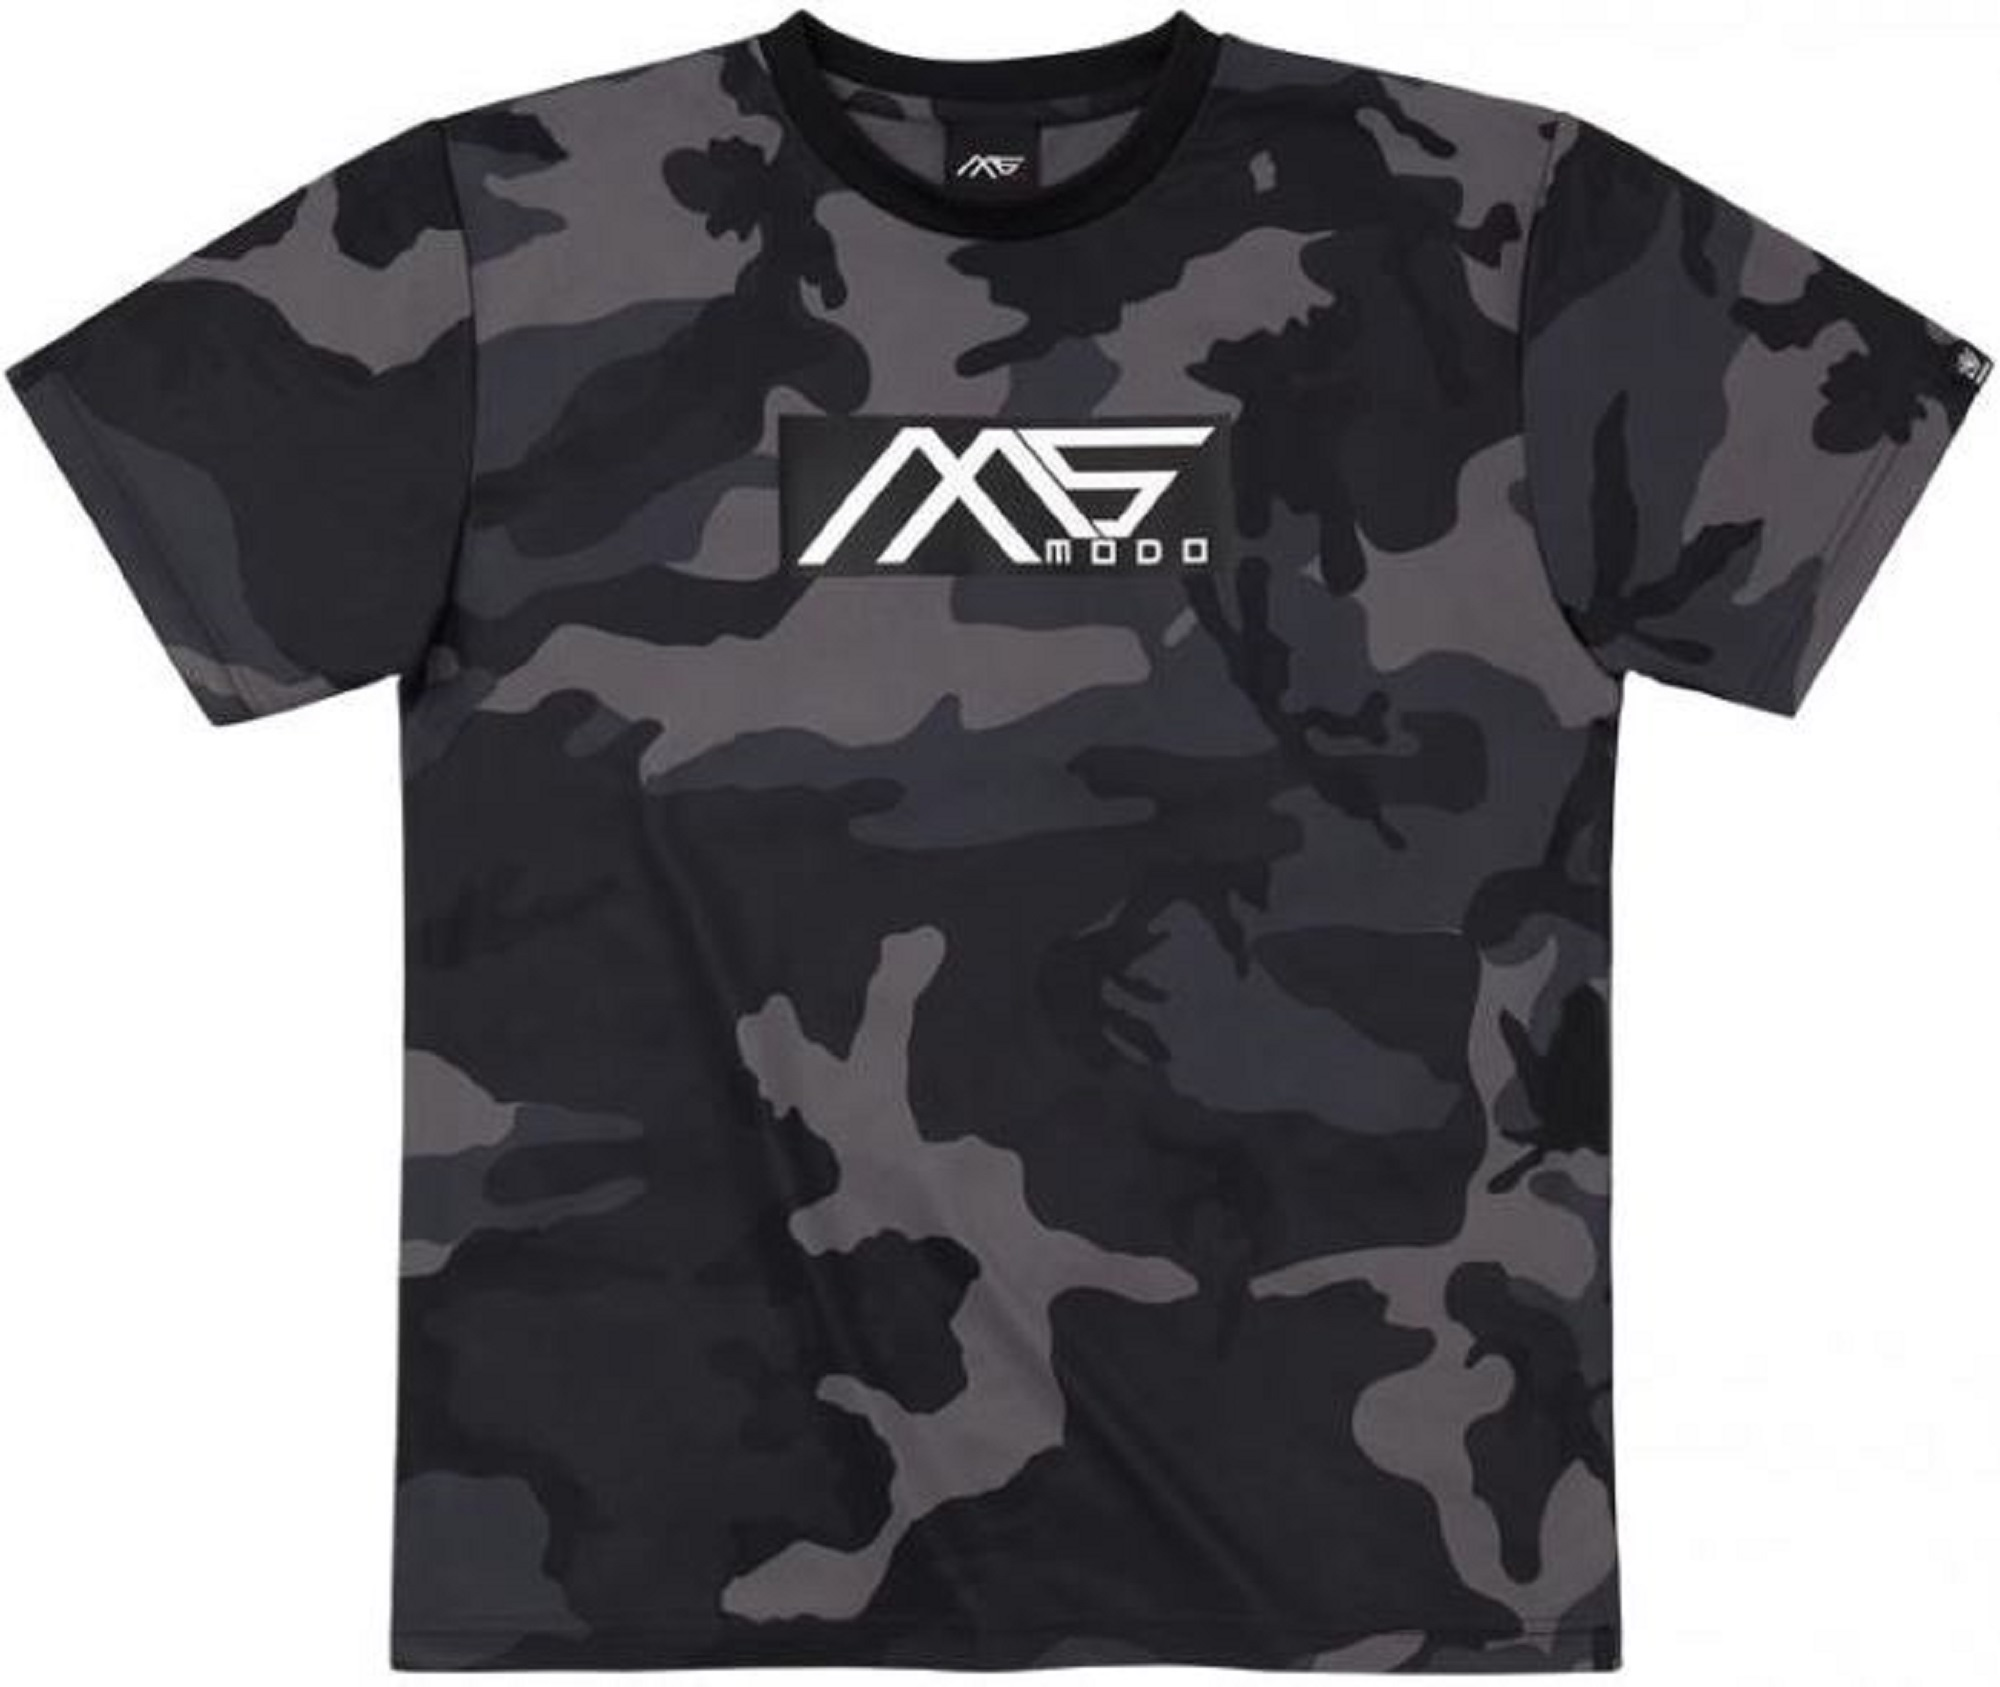 Evergreen T-Shirt Dry Fit Short Sleeve MS-modo Size S Black Camou (6276)